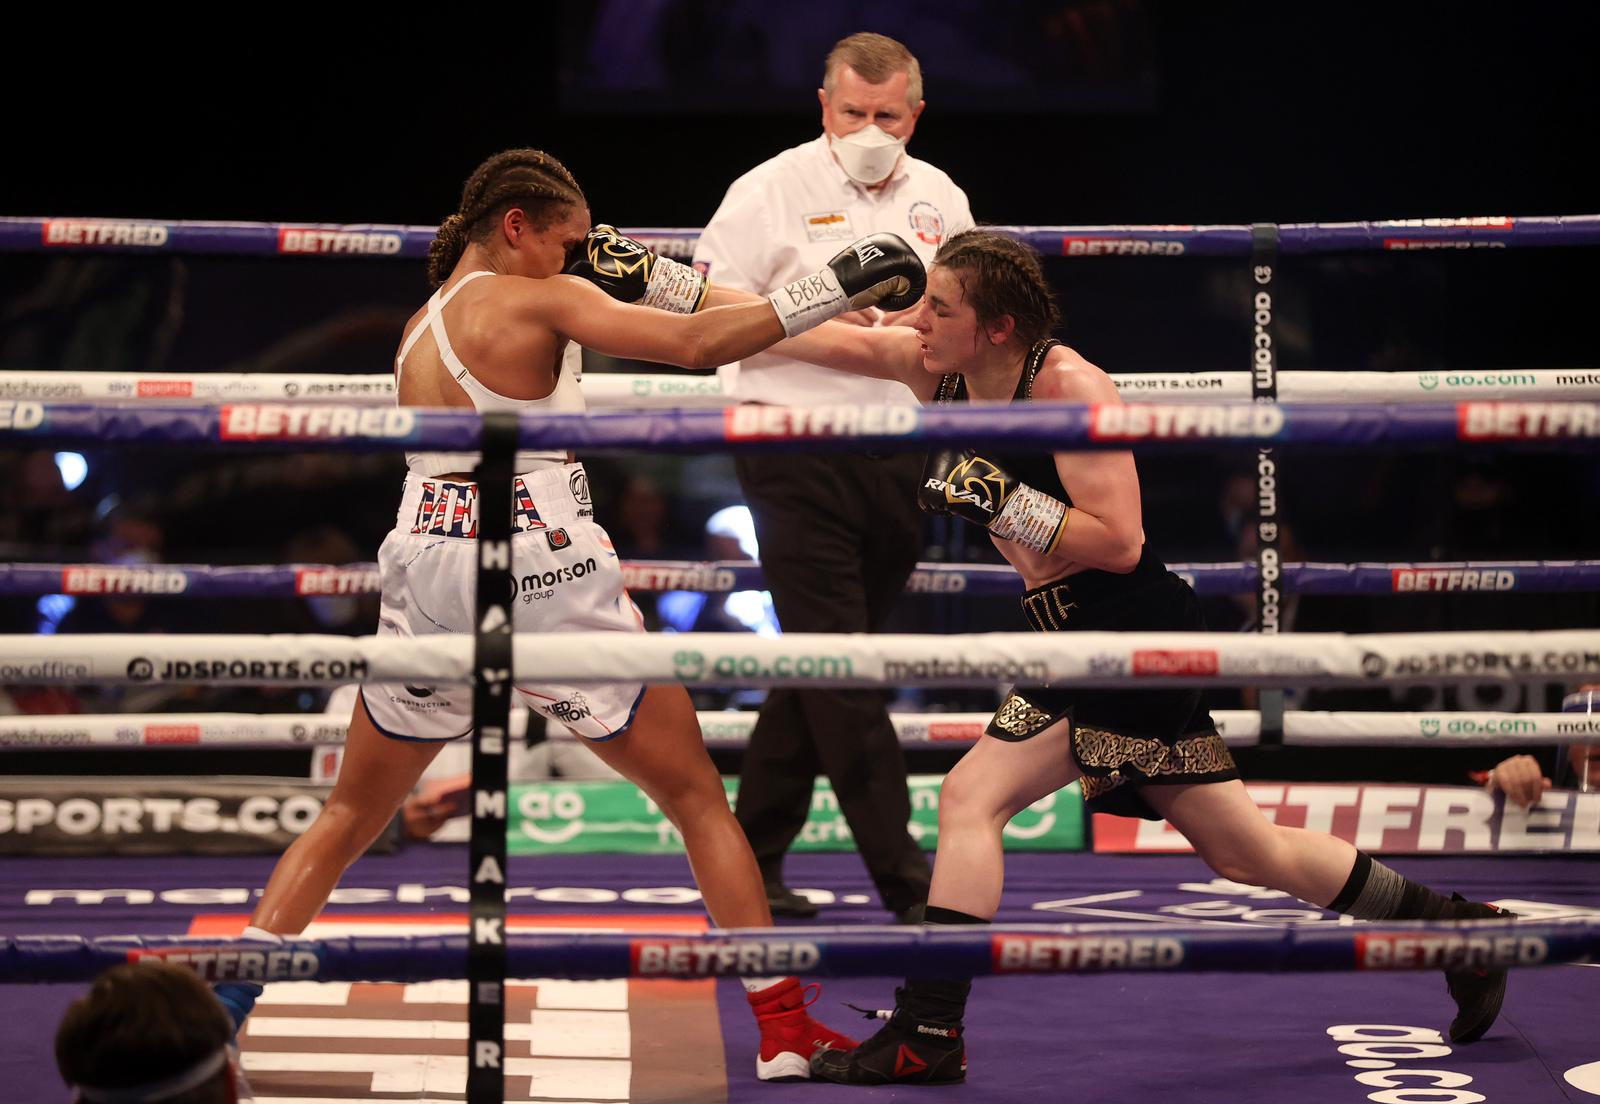 Taylor defeated Jonas and retained her WBA 135-pound crown